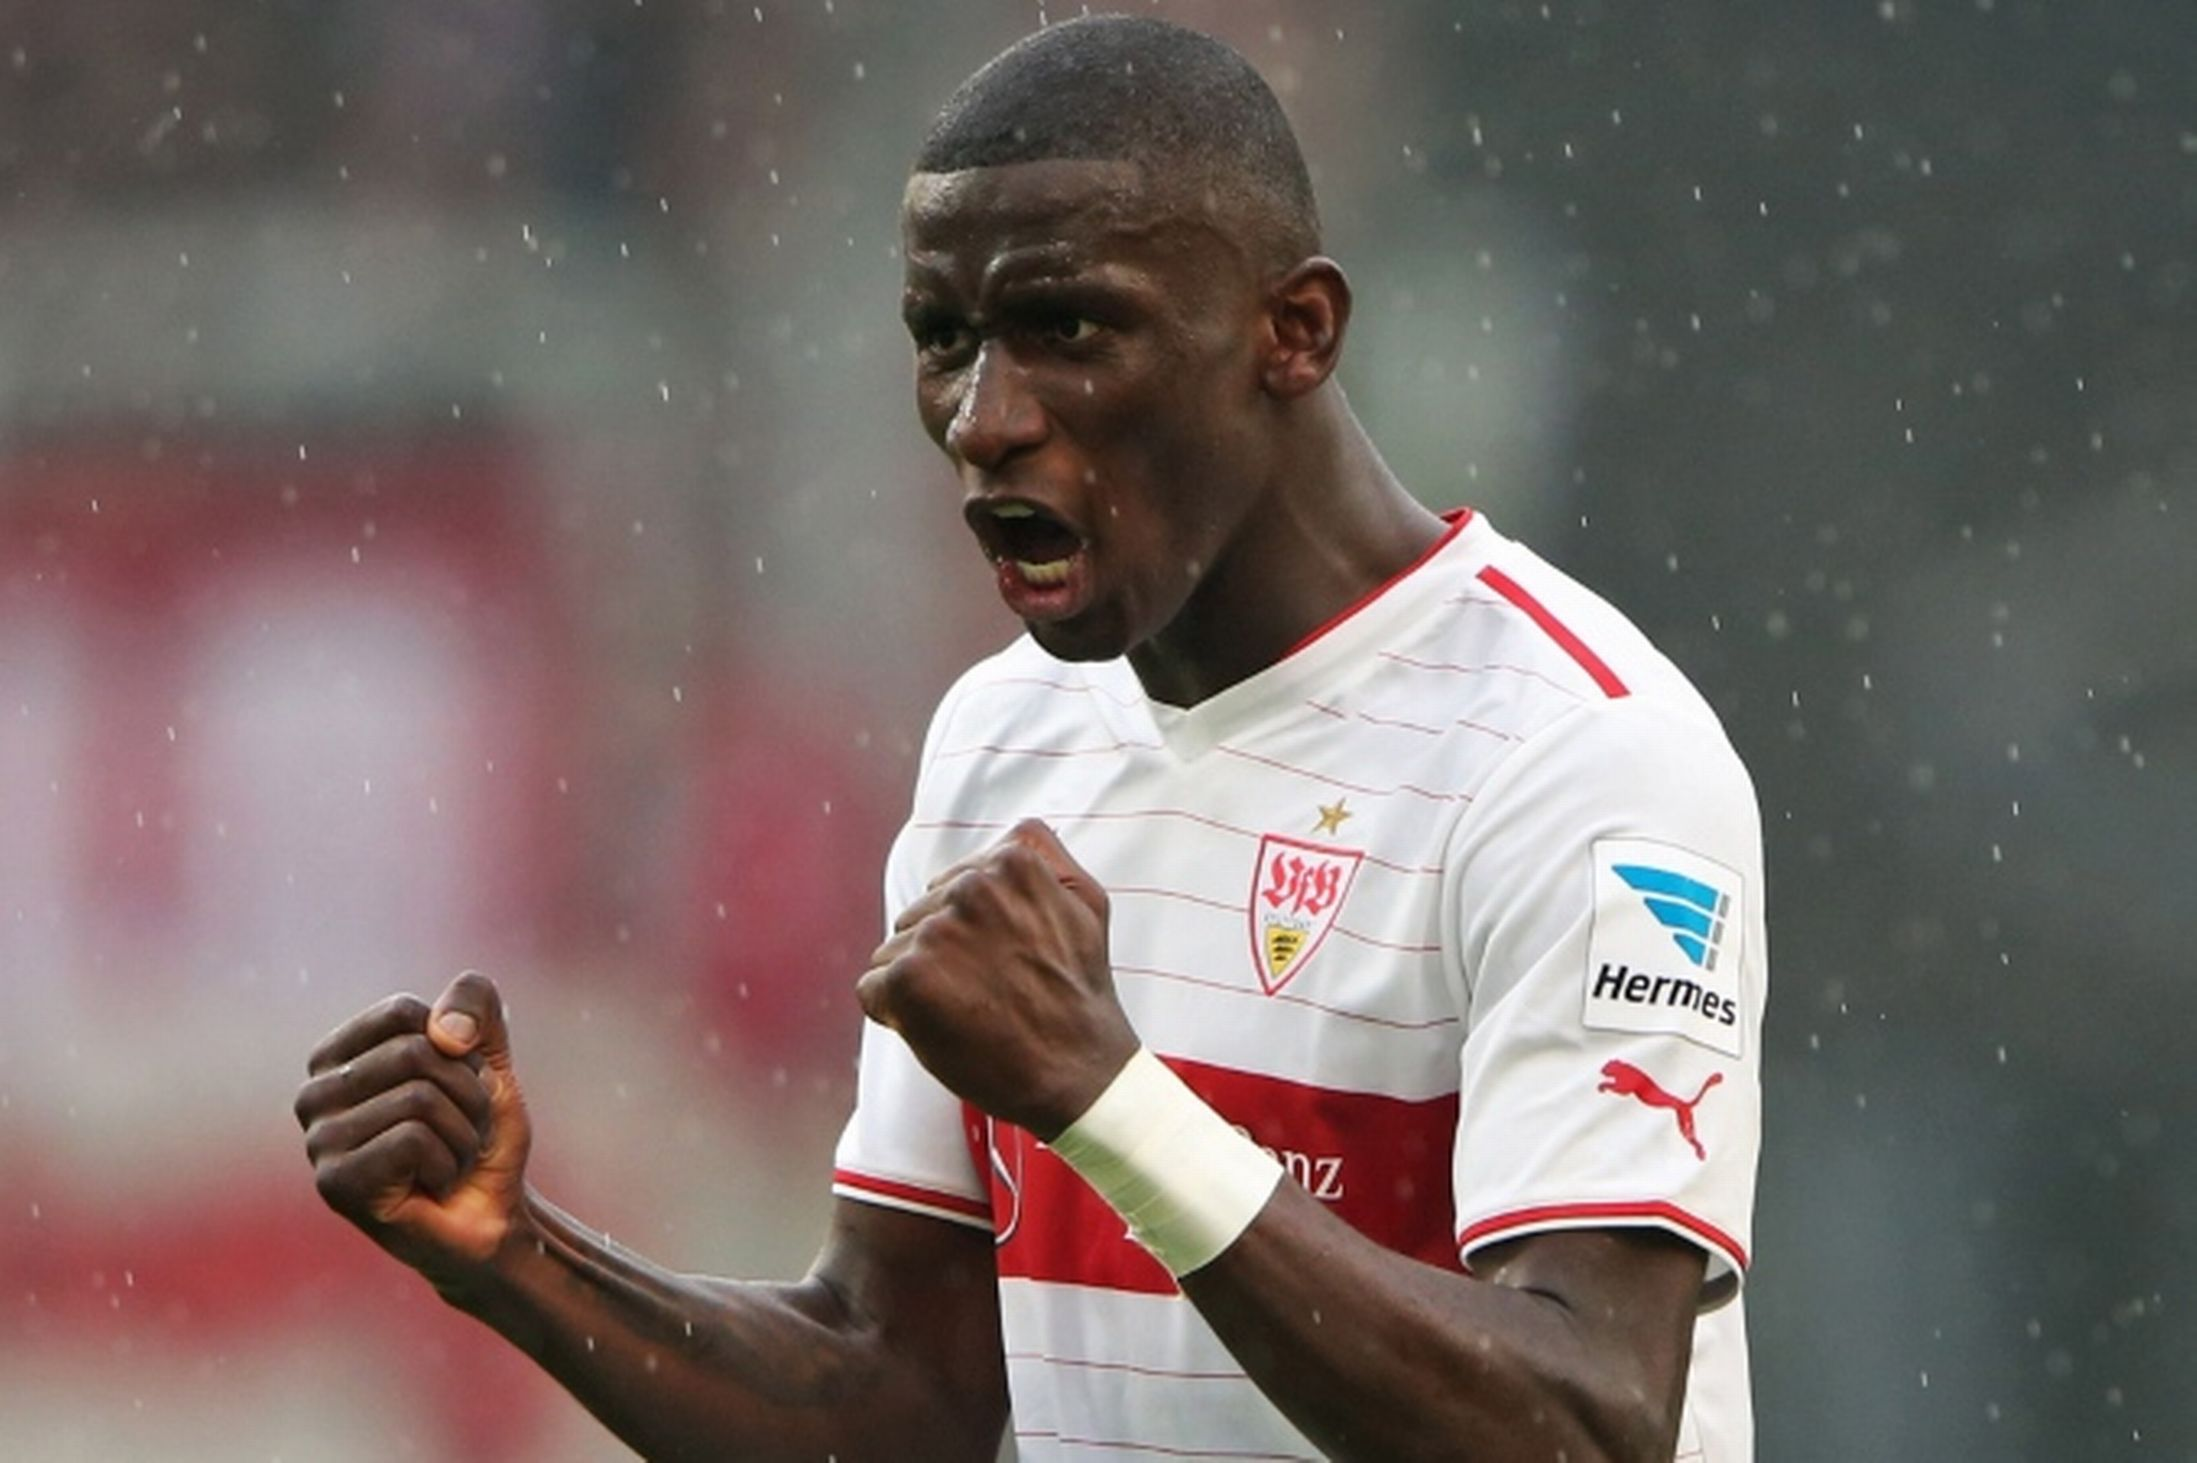 VfB Stuttgart centre-back Antonio Rudiger has admitted he is flattered by reports linking him with a move to Manchester United.